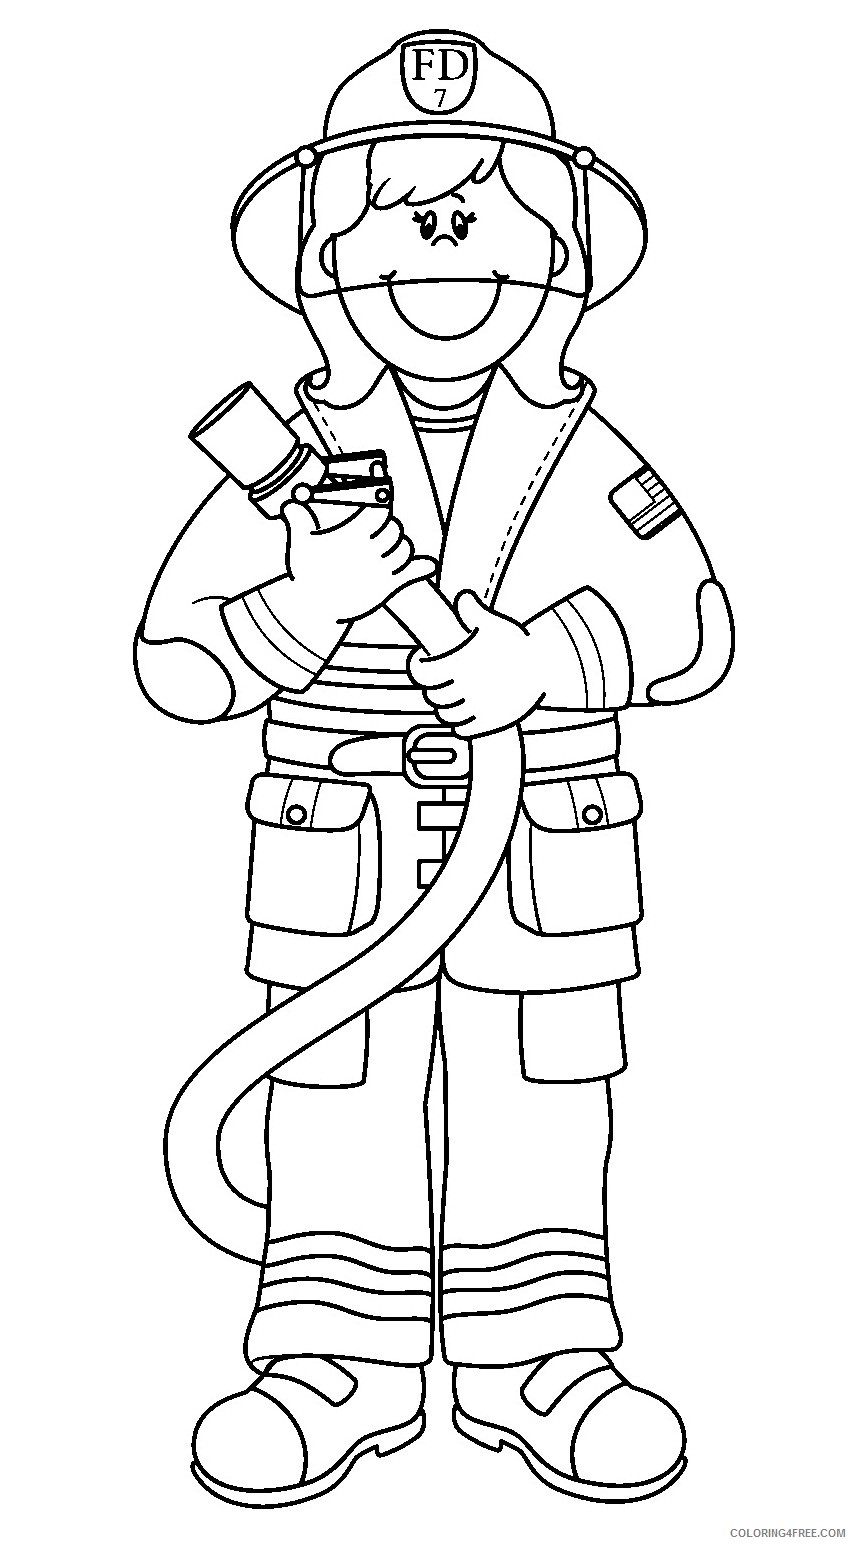 girl firefighter coloring pages Coloring4free